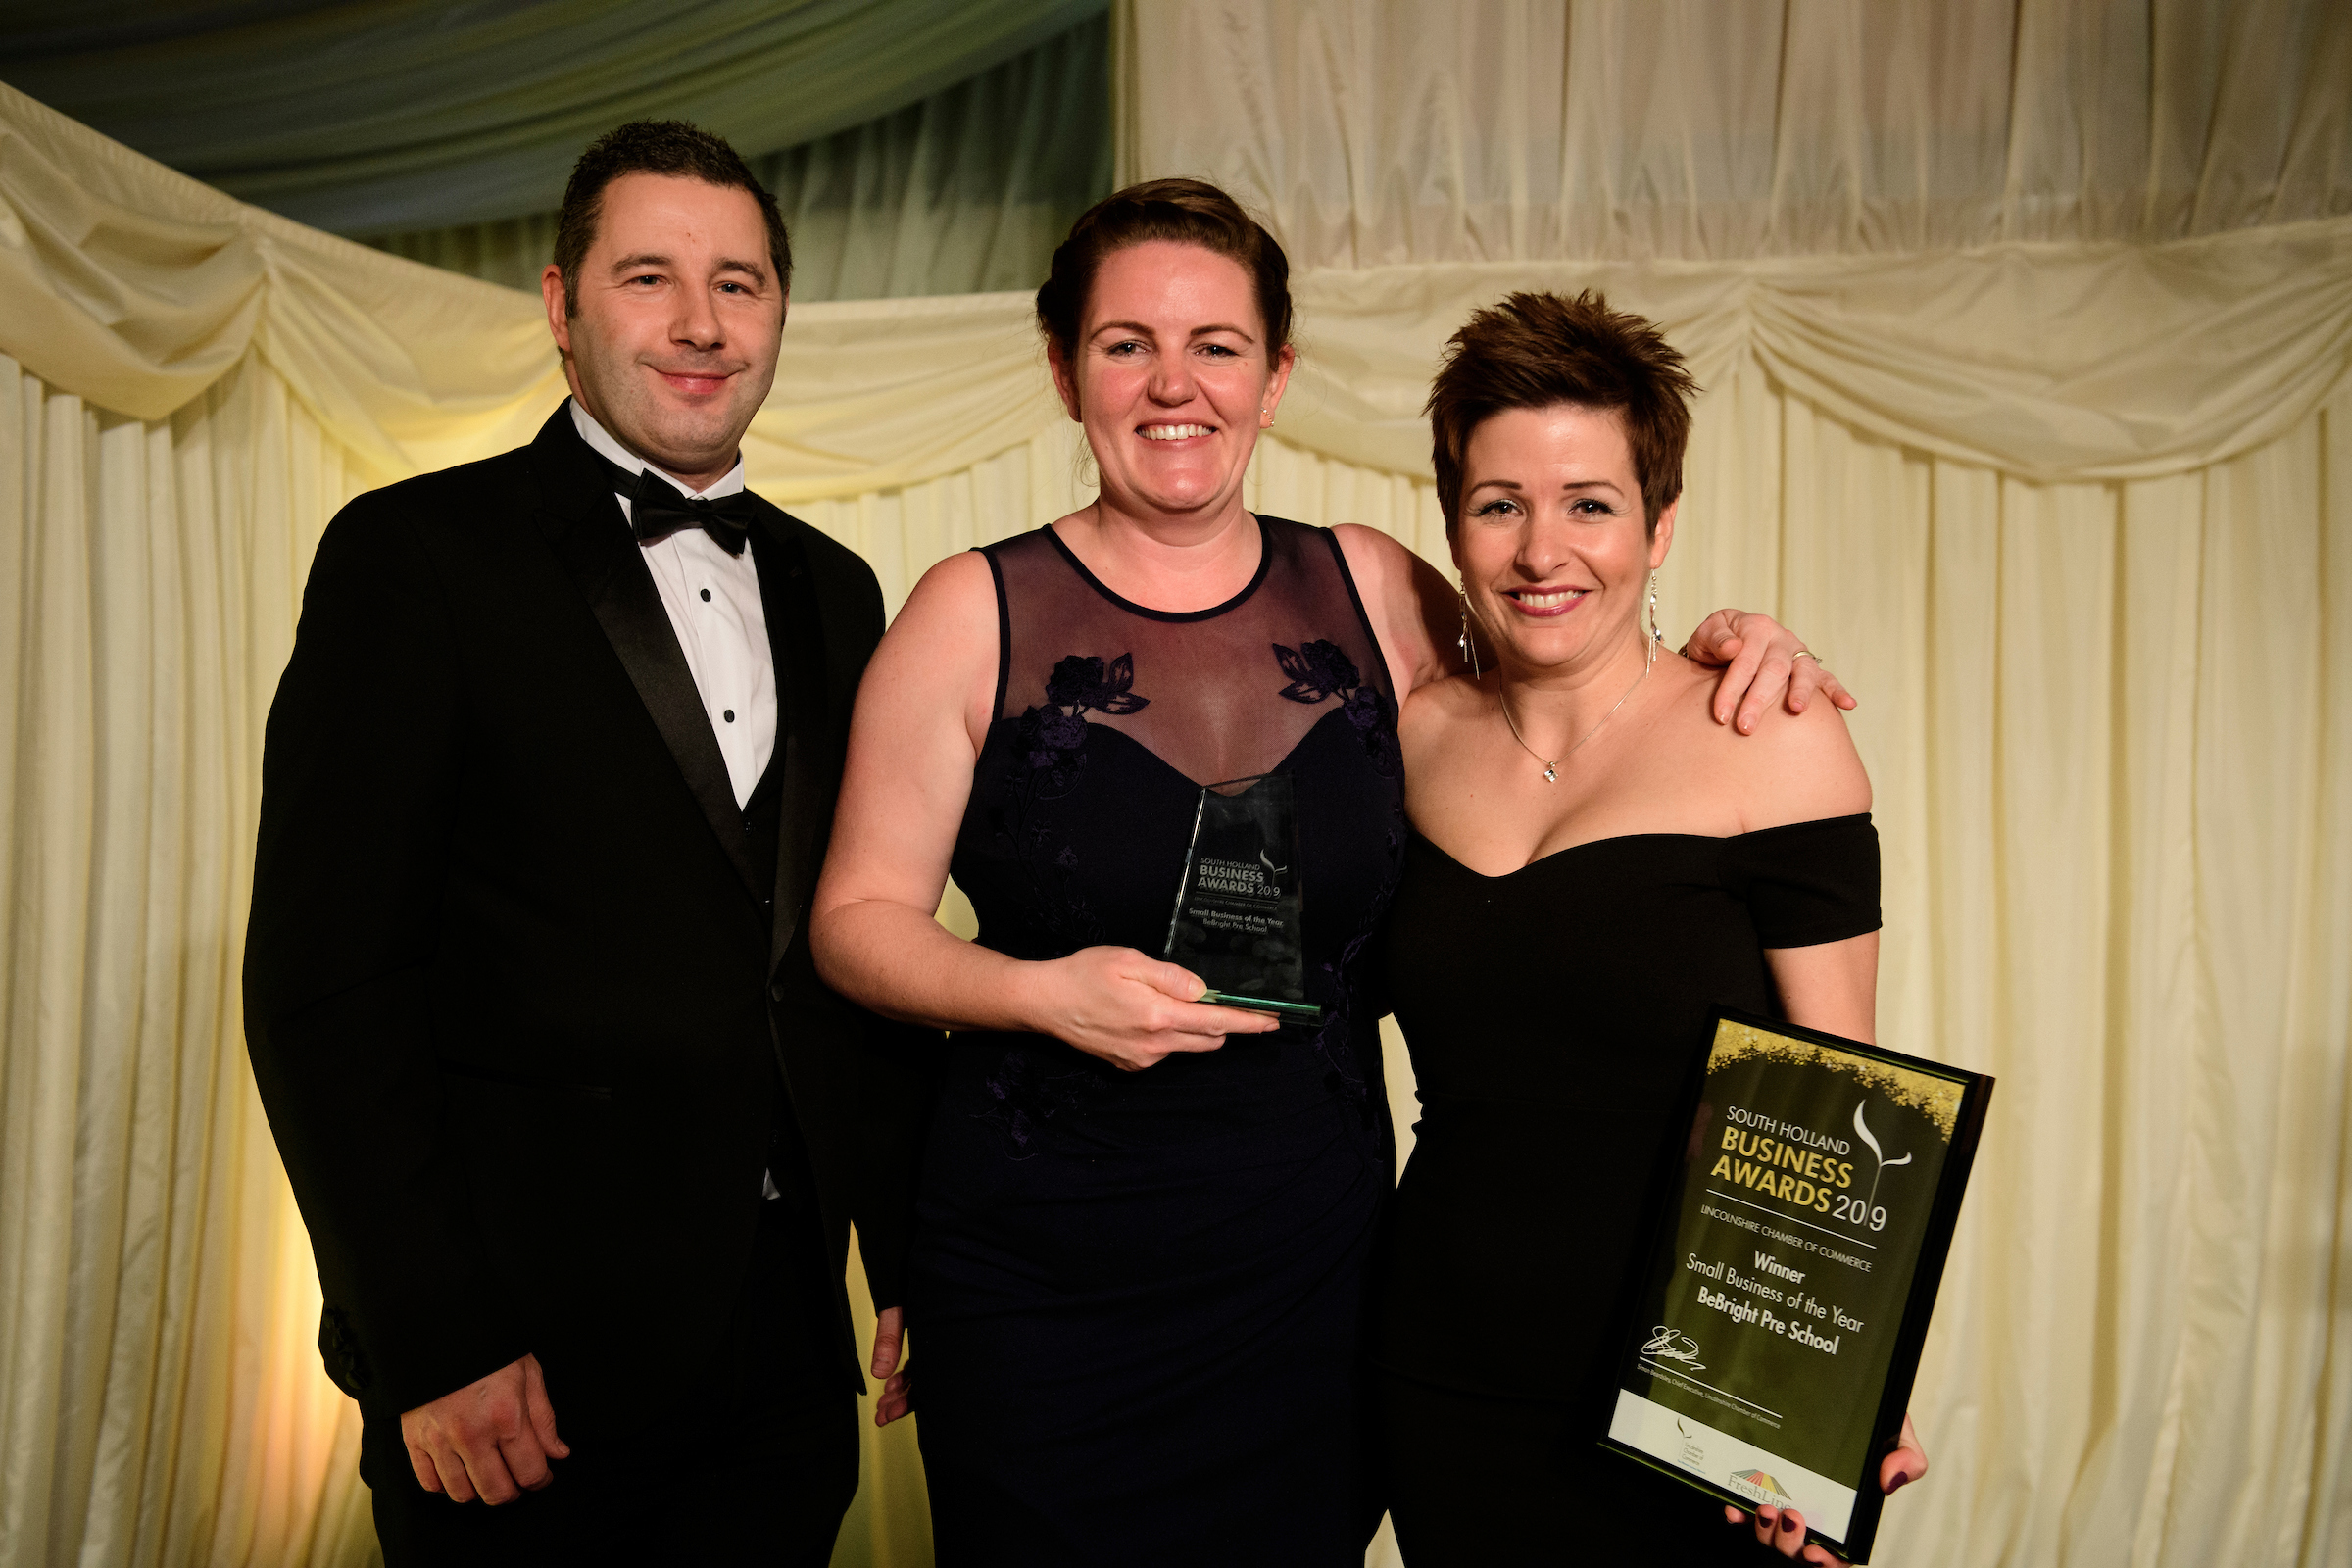 Two women in black dresses next to a man in suit and bowtie with a trophy and certificate at the South Holland Business Awards 2019